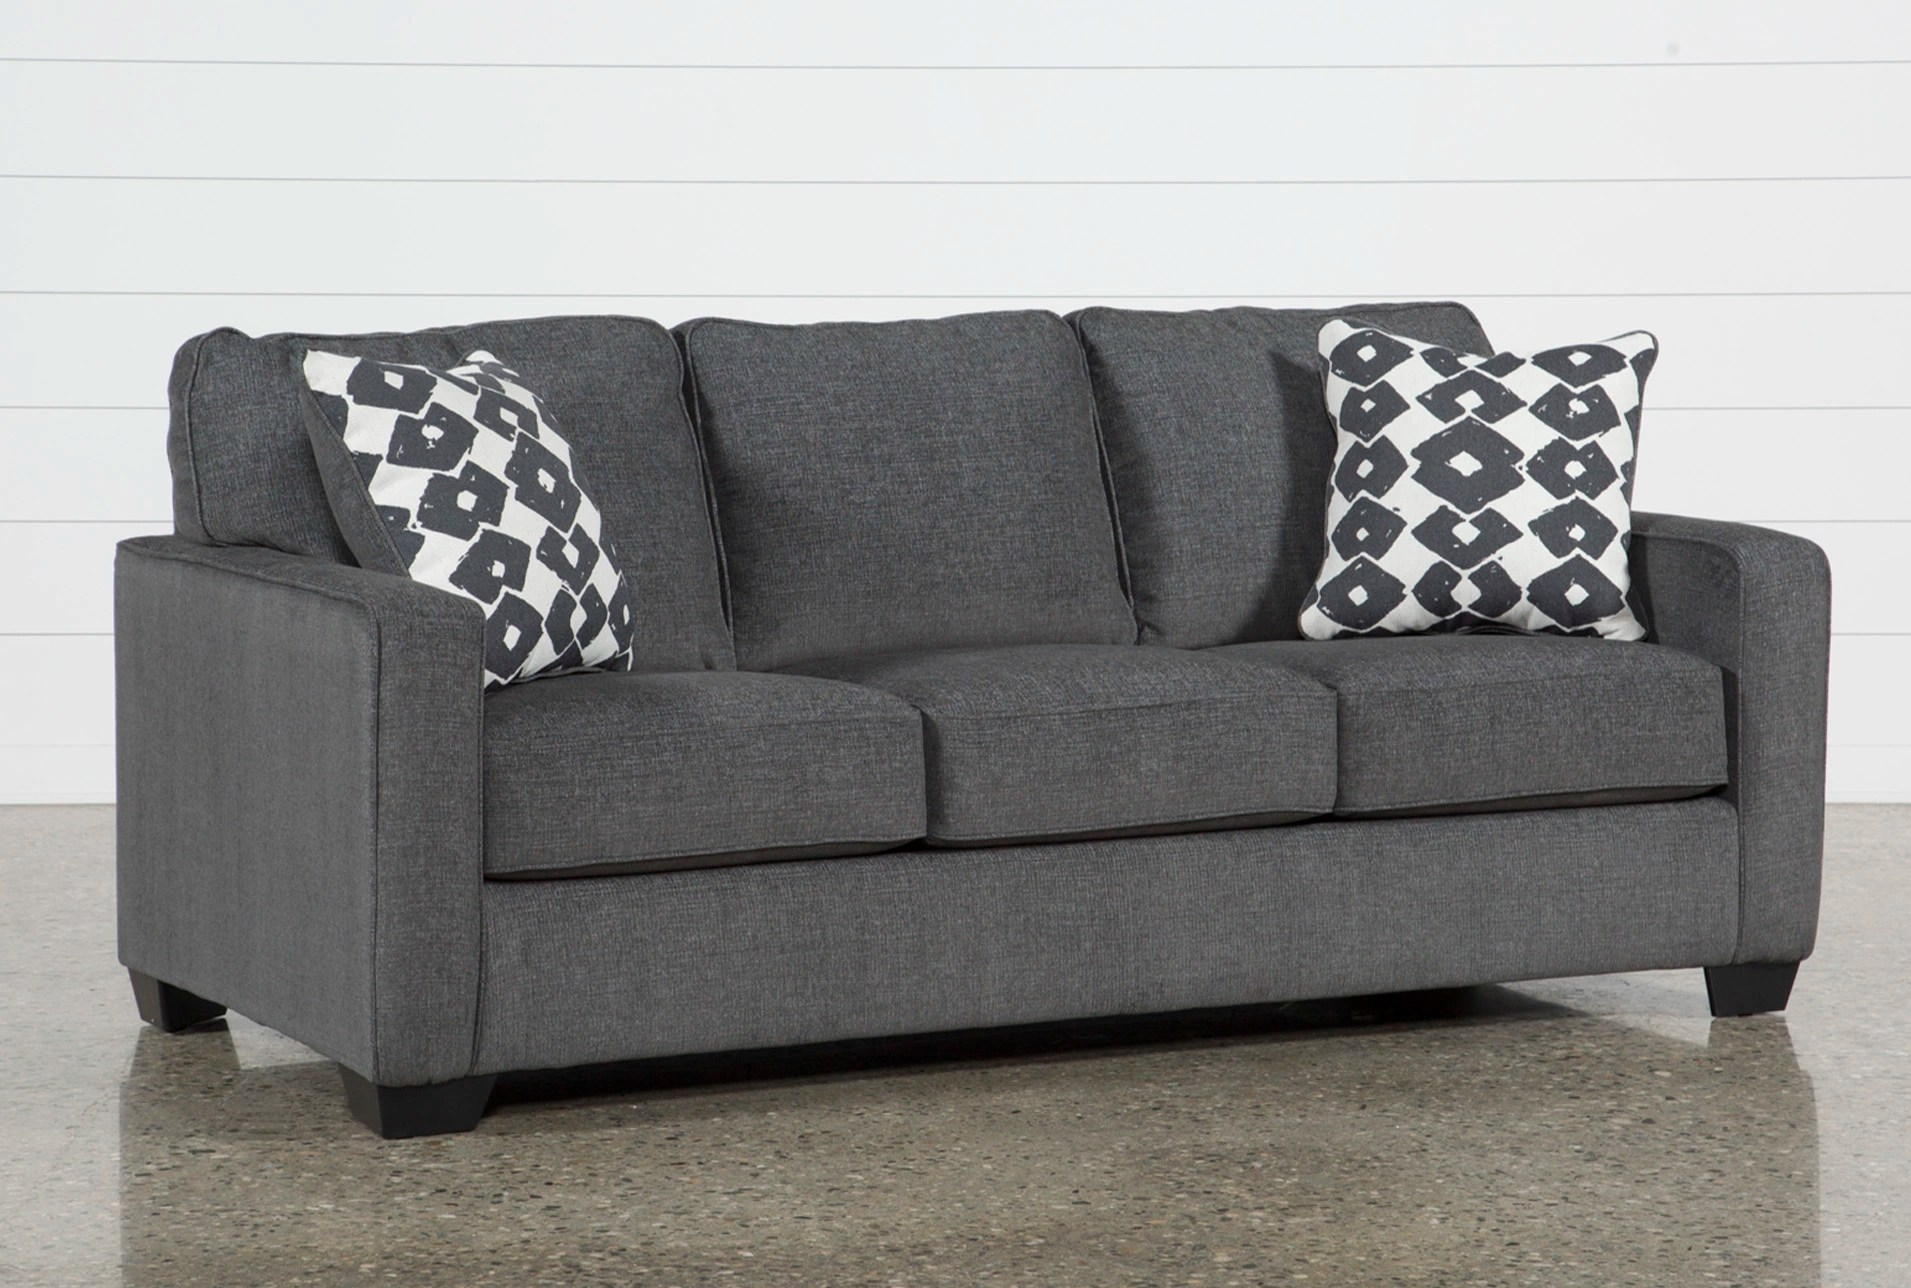 Buy Sofa Bed Online Sofa Beds Sleeper Sofas Free Assembly With Delivery Living